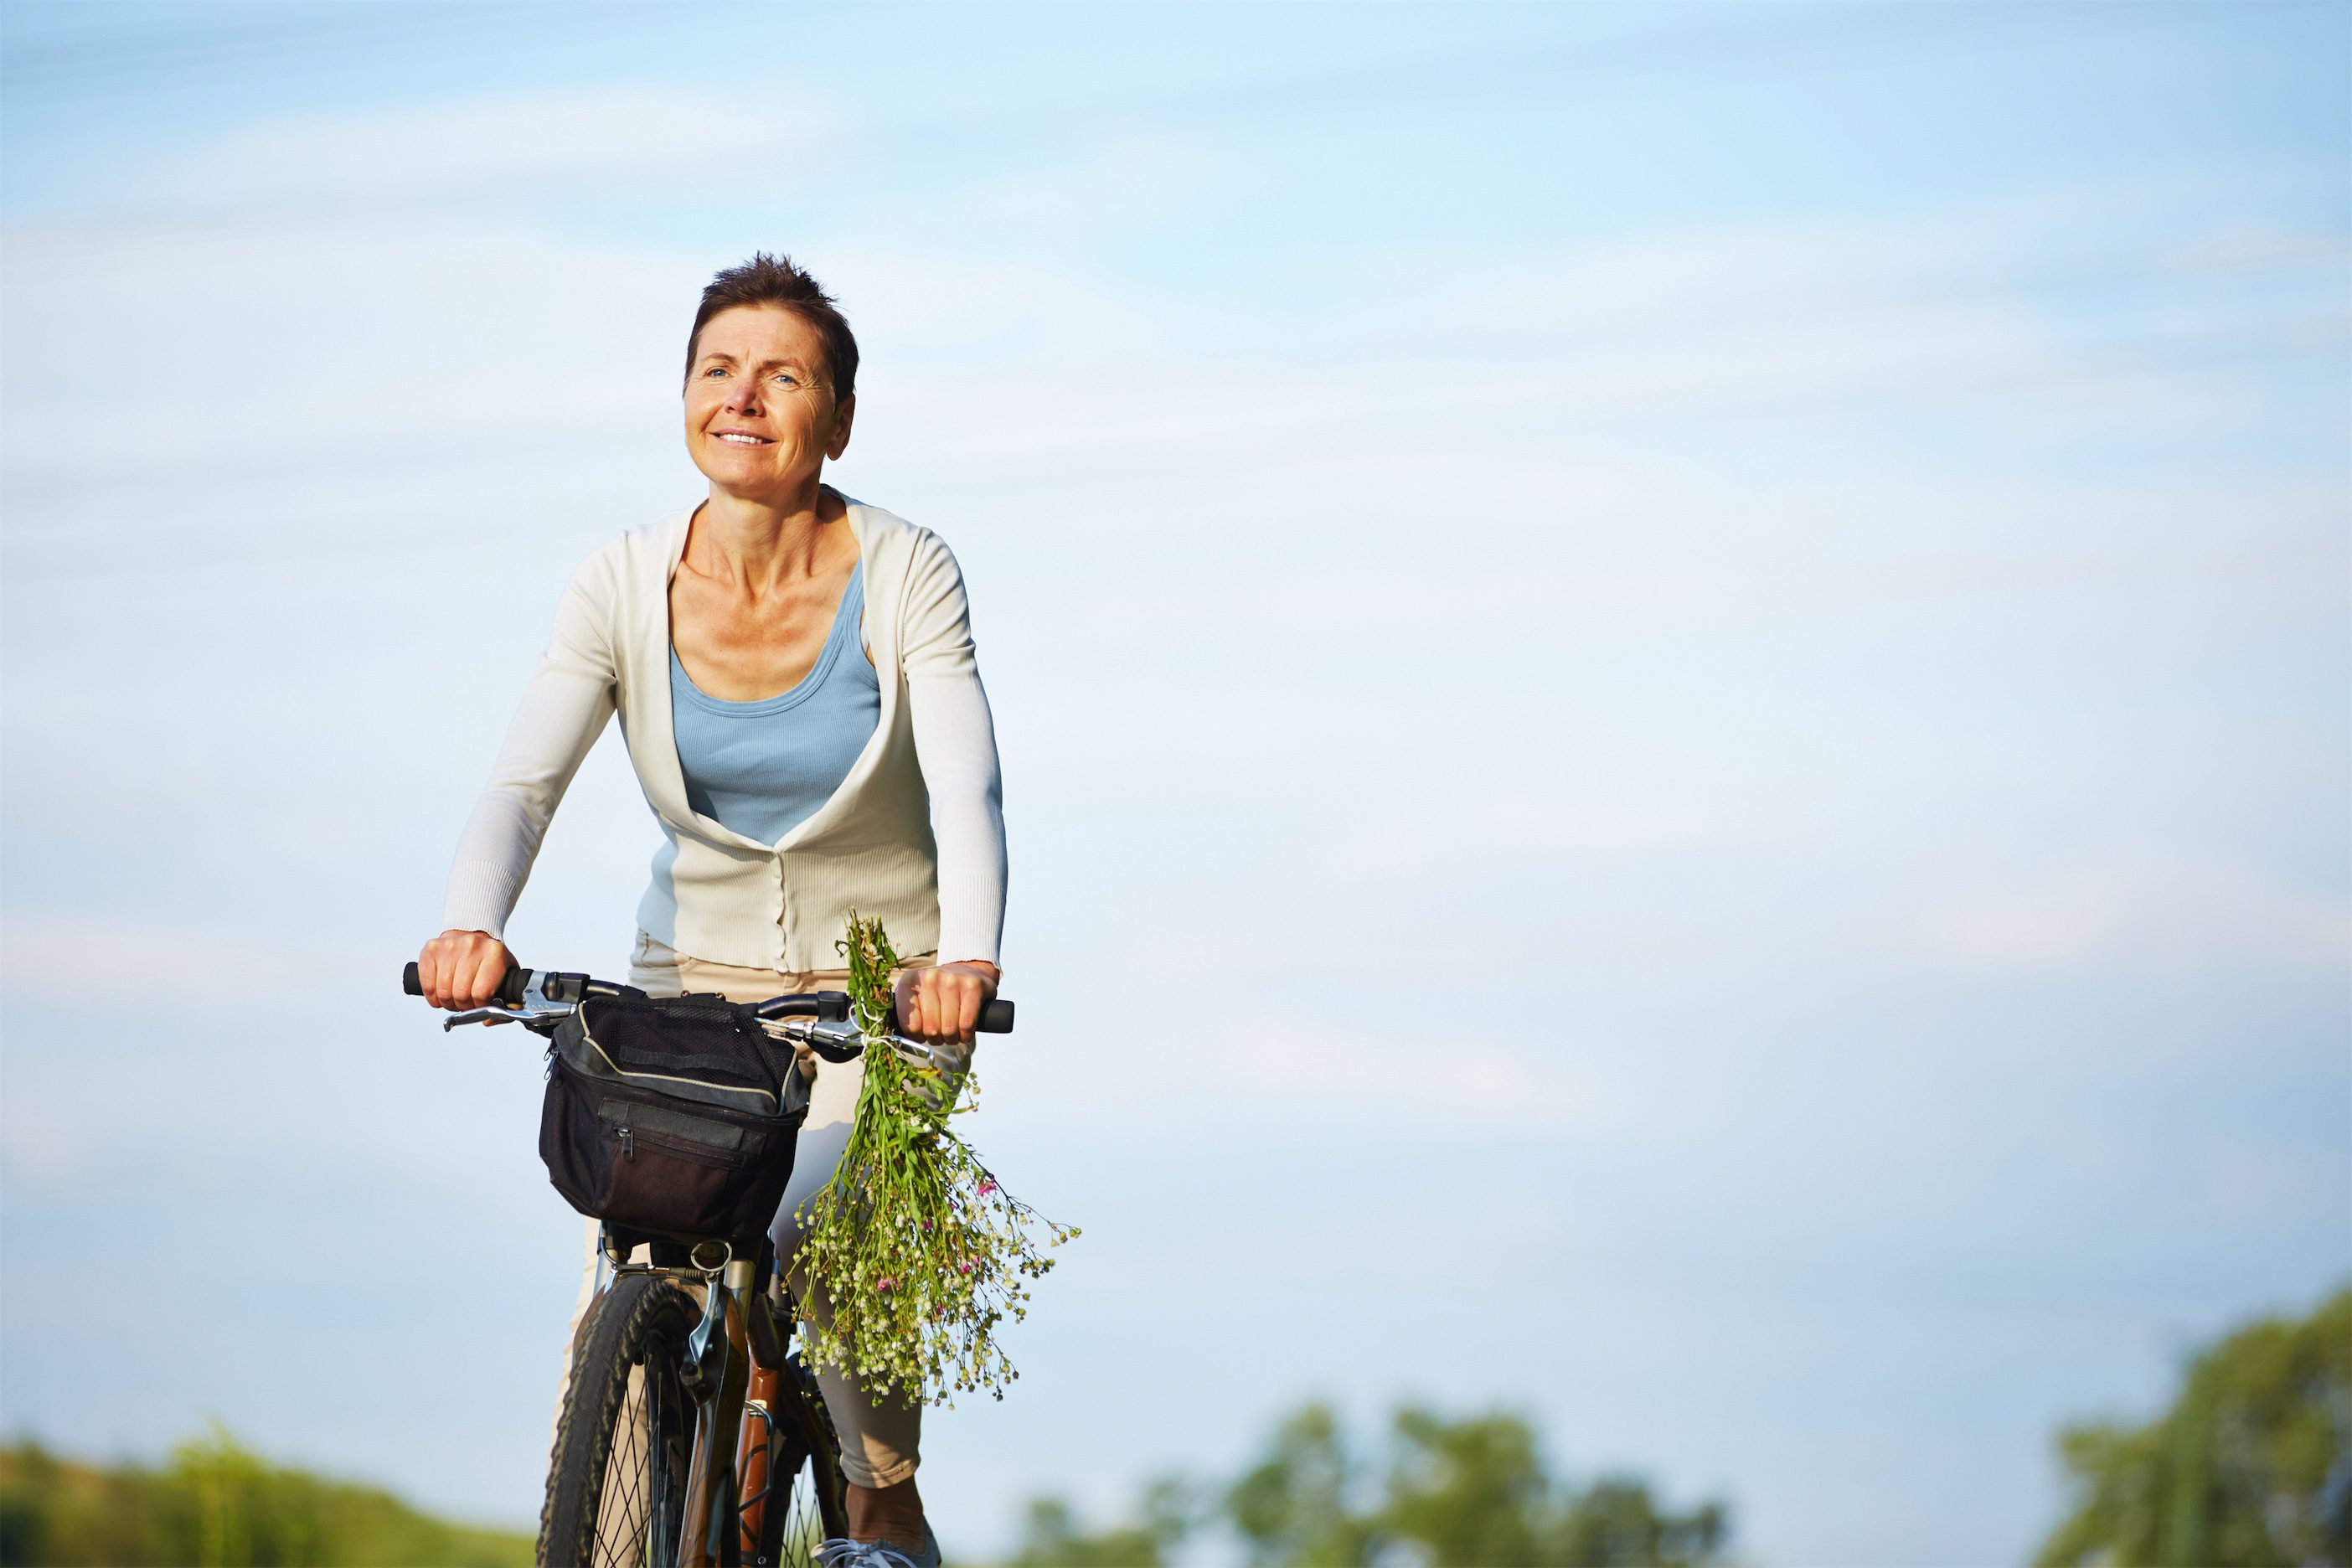 Healthy menopause woman riding bike in nature